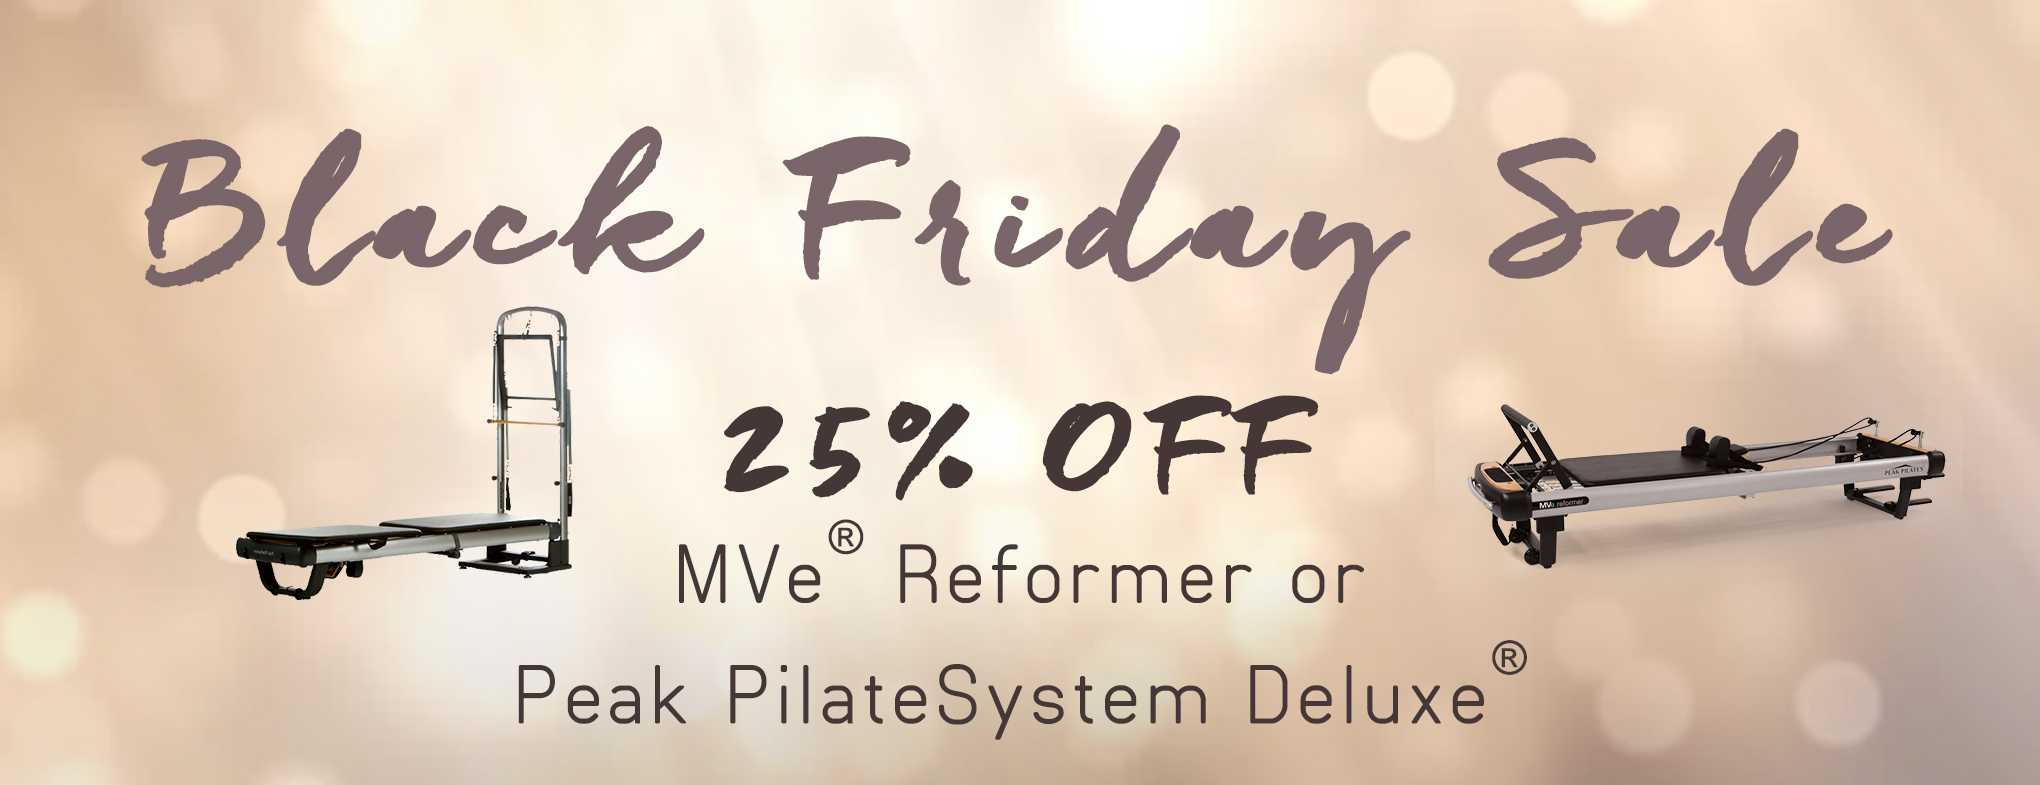 Black Friday Sale - 25% off MVe Reformer or MVe Reformer with Tower